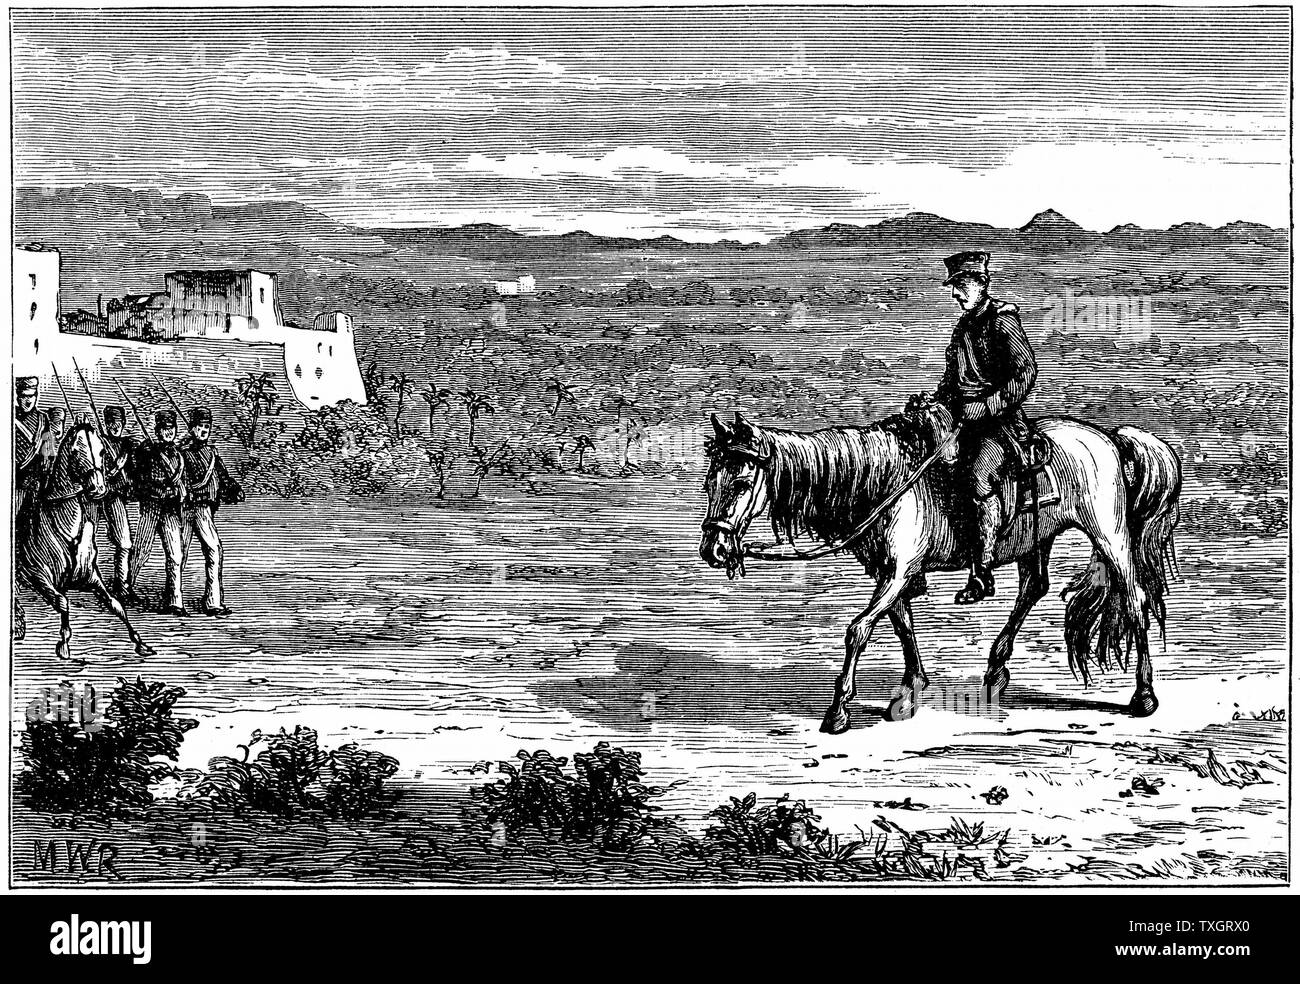 First Anglo-Afghan War (1838-1842): Dr Brydon,  only survivor of the 4,500 British soldiers and 12,000 camp-followers who left Cabul (Kabul) on 6 January 1842 to escape, arriving at Jaalabad with news of the disaster, 13 January  c.1890 Wood engraving Stock Photo